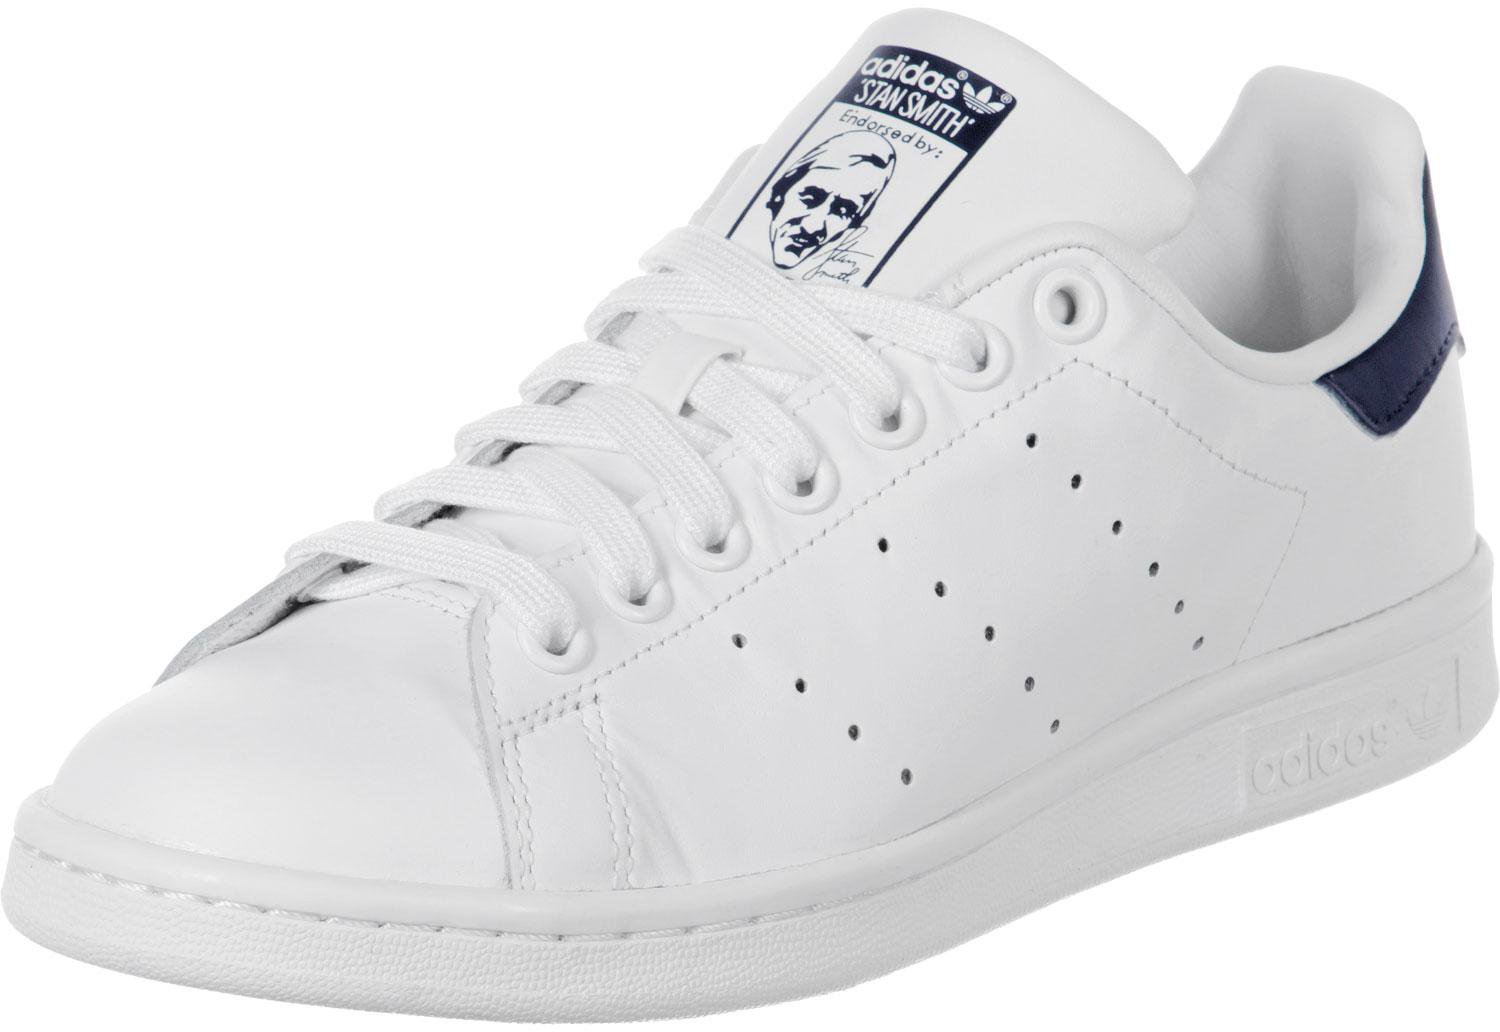 50% price online here best authentic Adidas Stan Smith Retro-Sneaker (white)